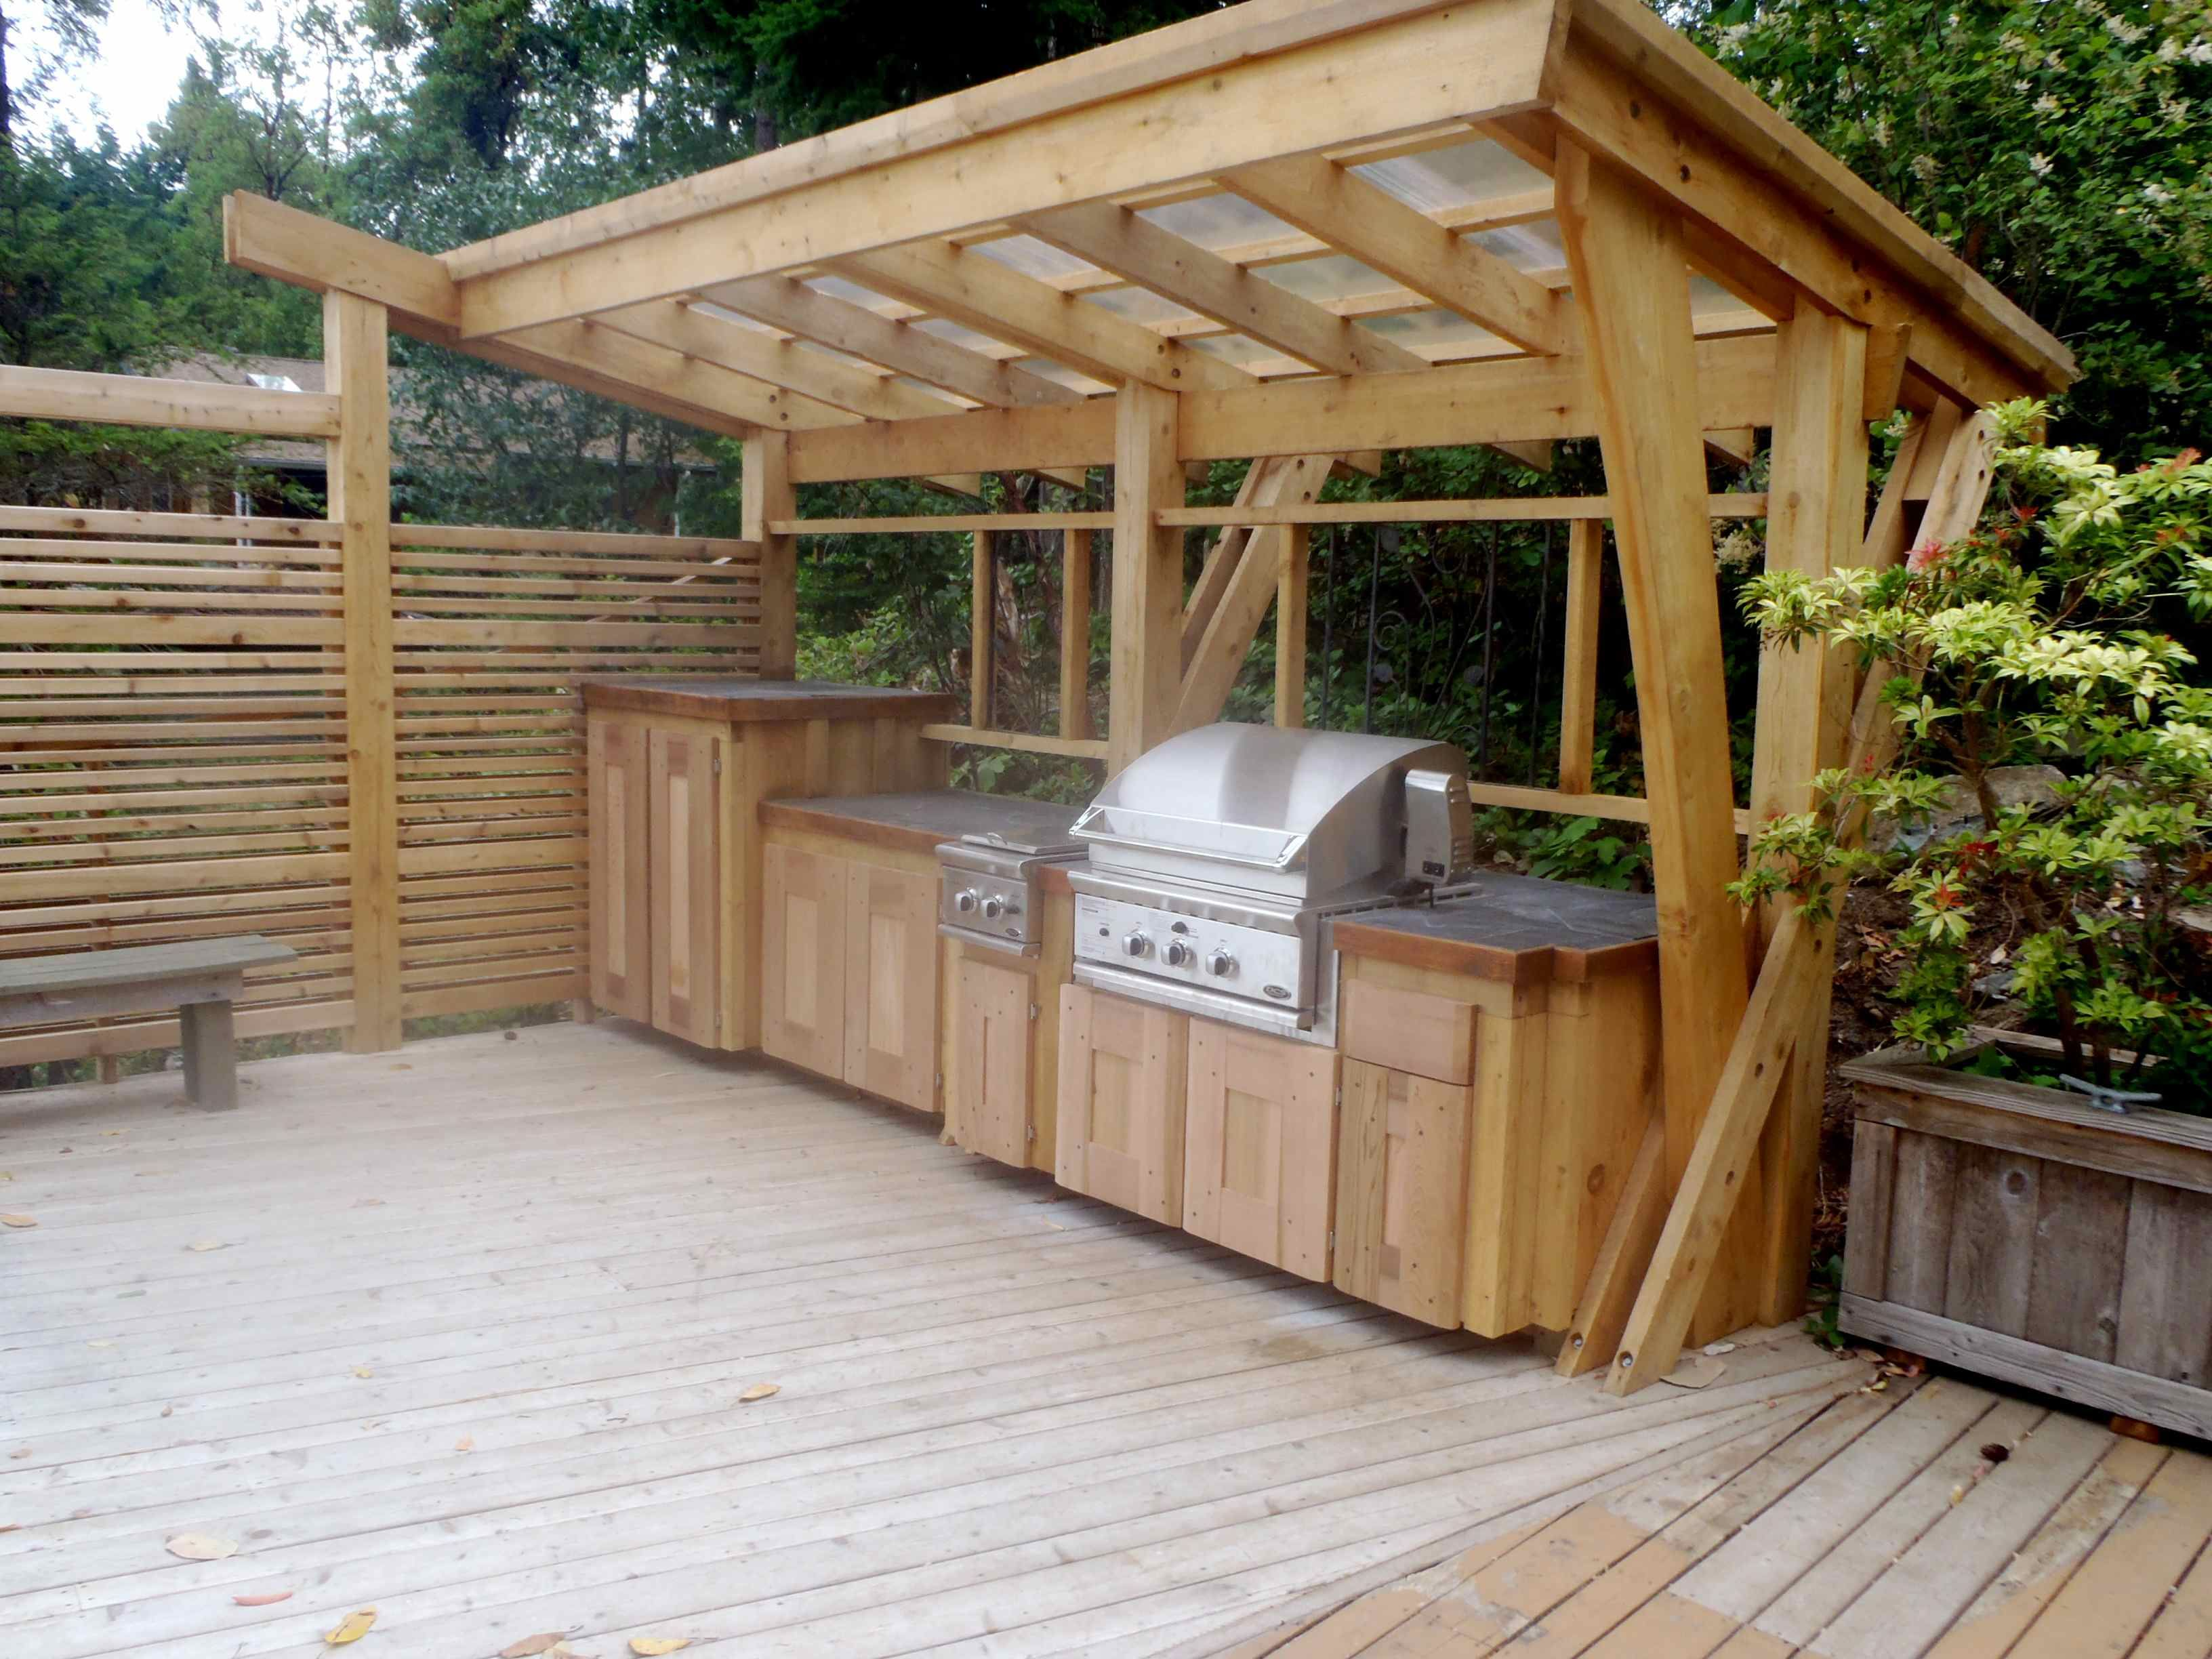 Outdoor kitchen cedar bbq cover outdoor for Outdoor kitchen bbq designs